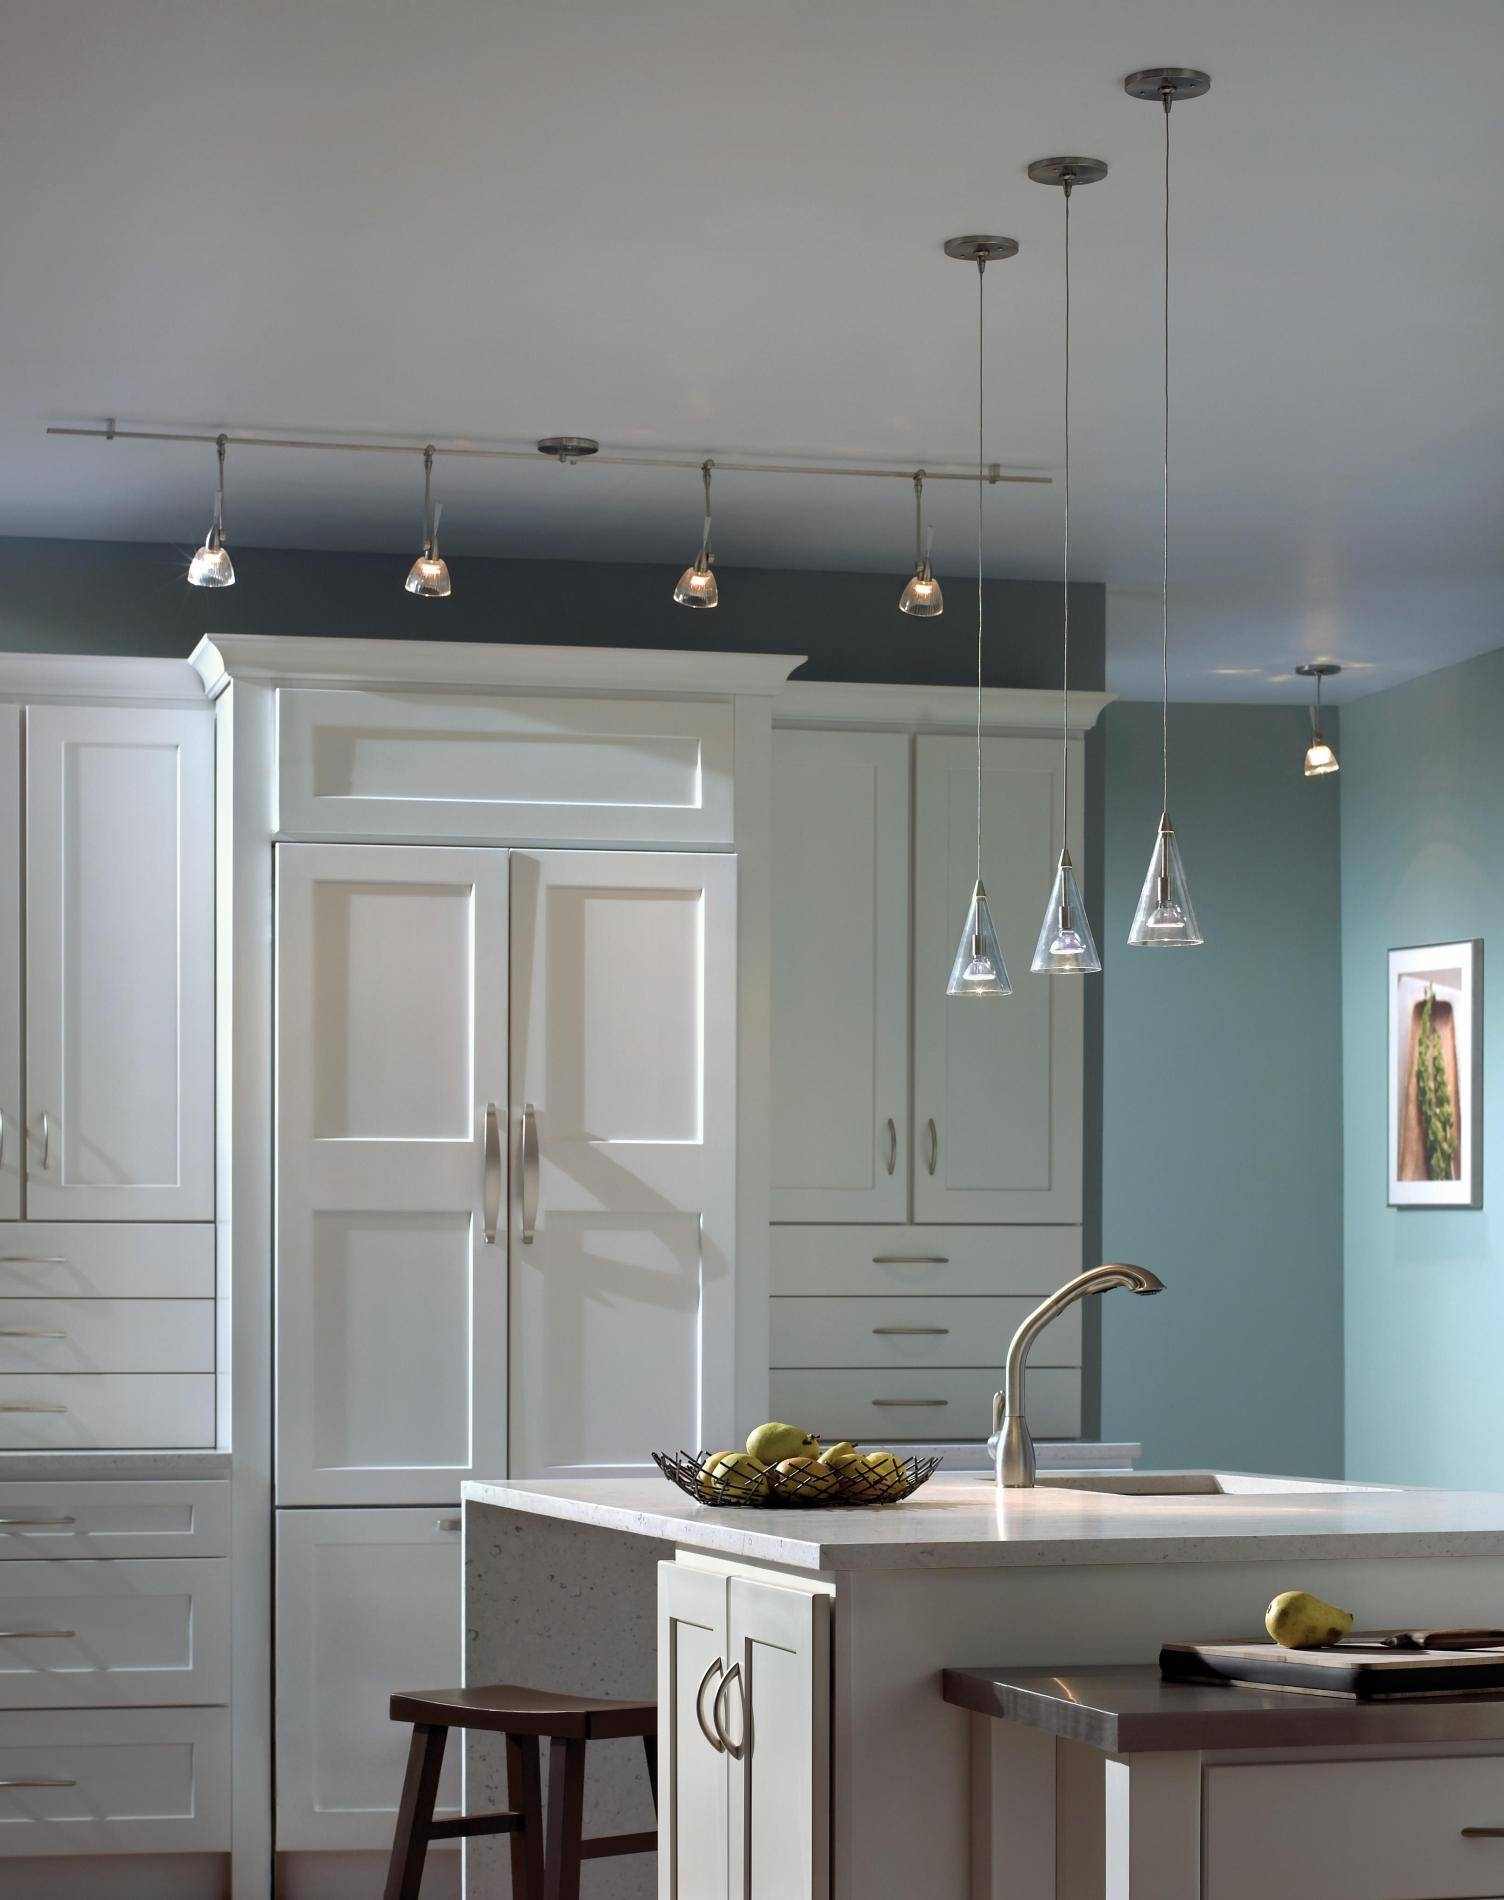 Light : Wall Mounted Track Lighting For Kitchen Classic Clean Pertaining To Kitchen Track Pendant Lighting (View 10 of 15)